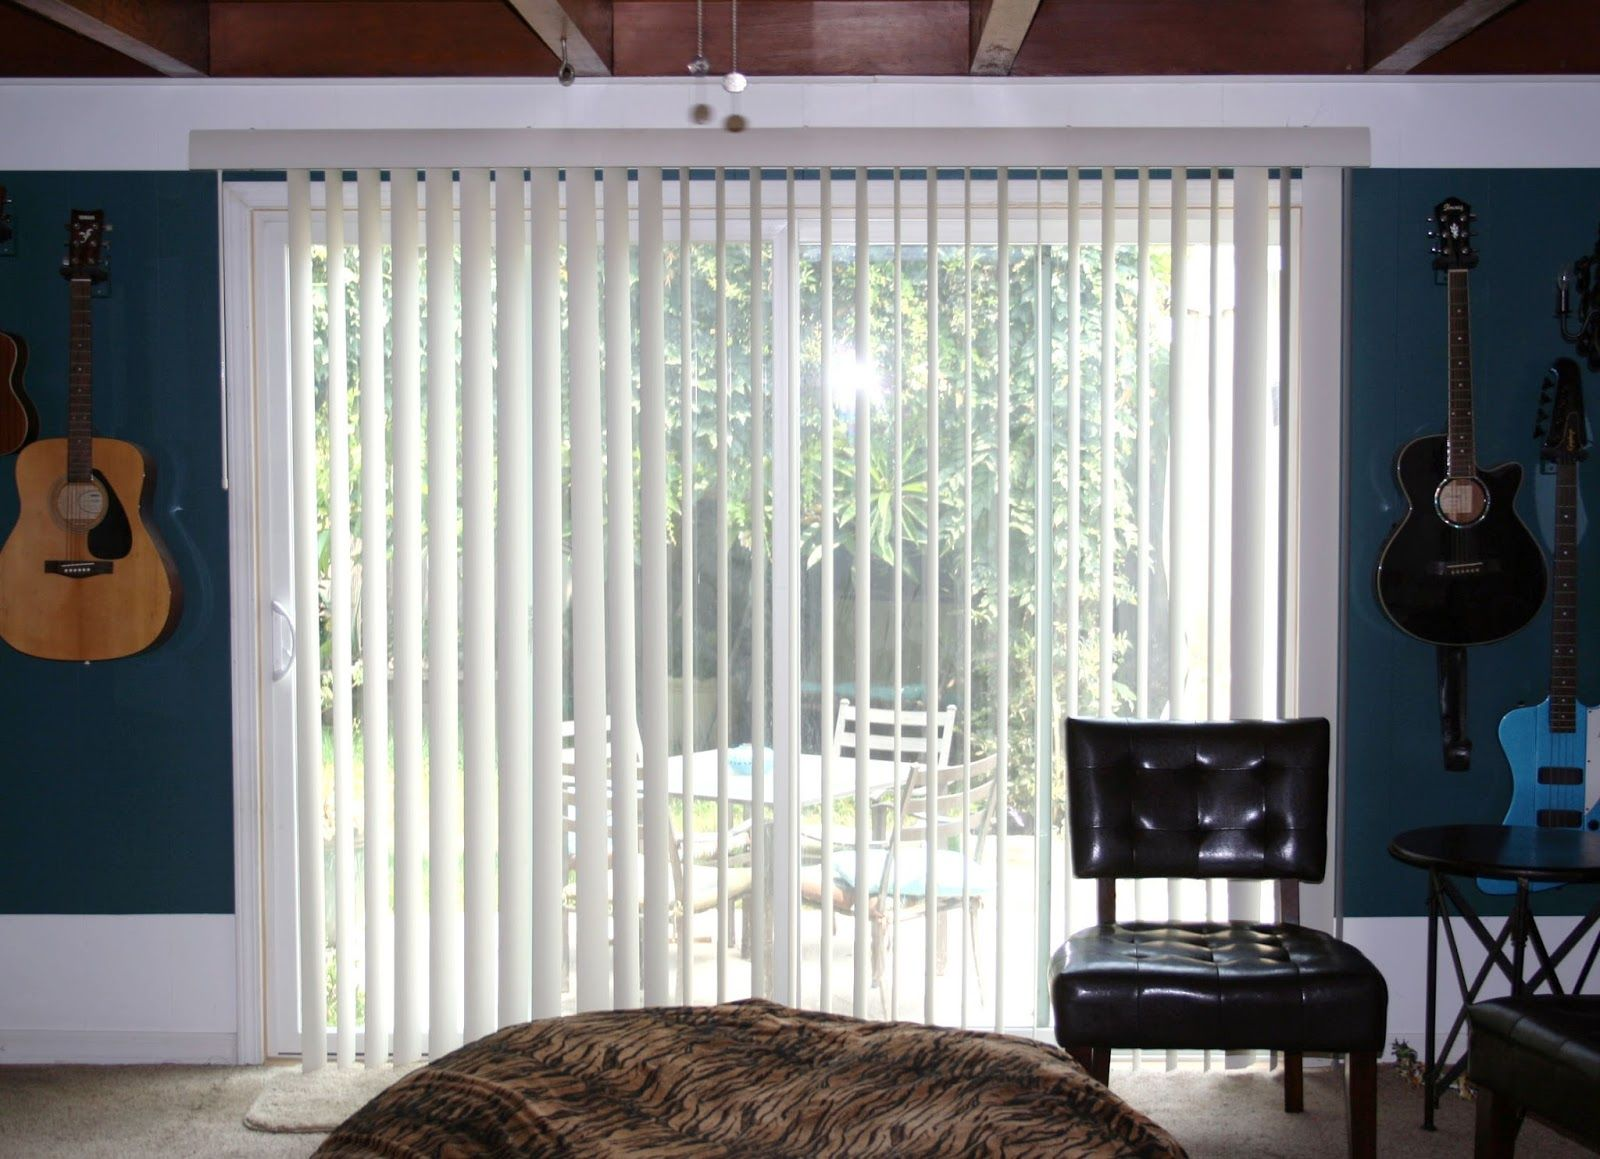 Window blinds ideas  hanging curtains on a vertical blind track  new home deisgn and